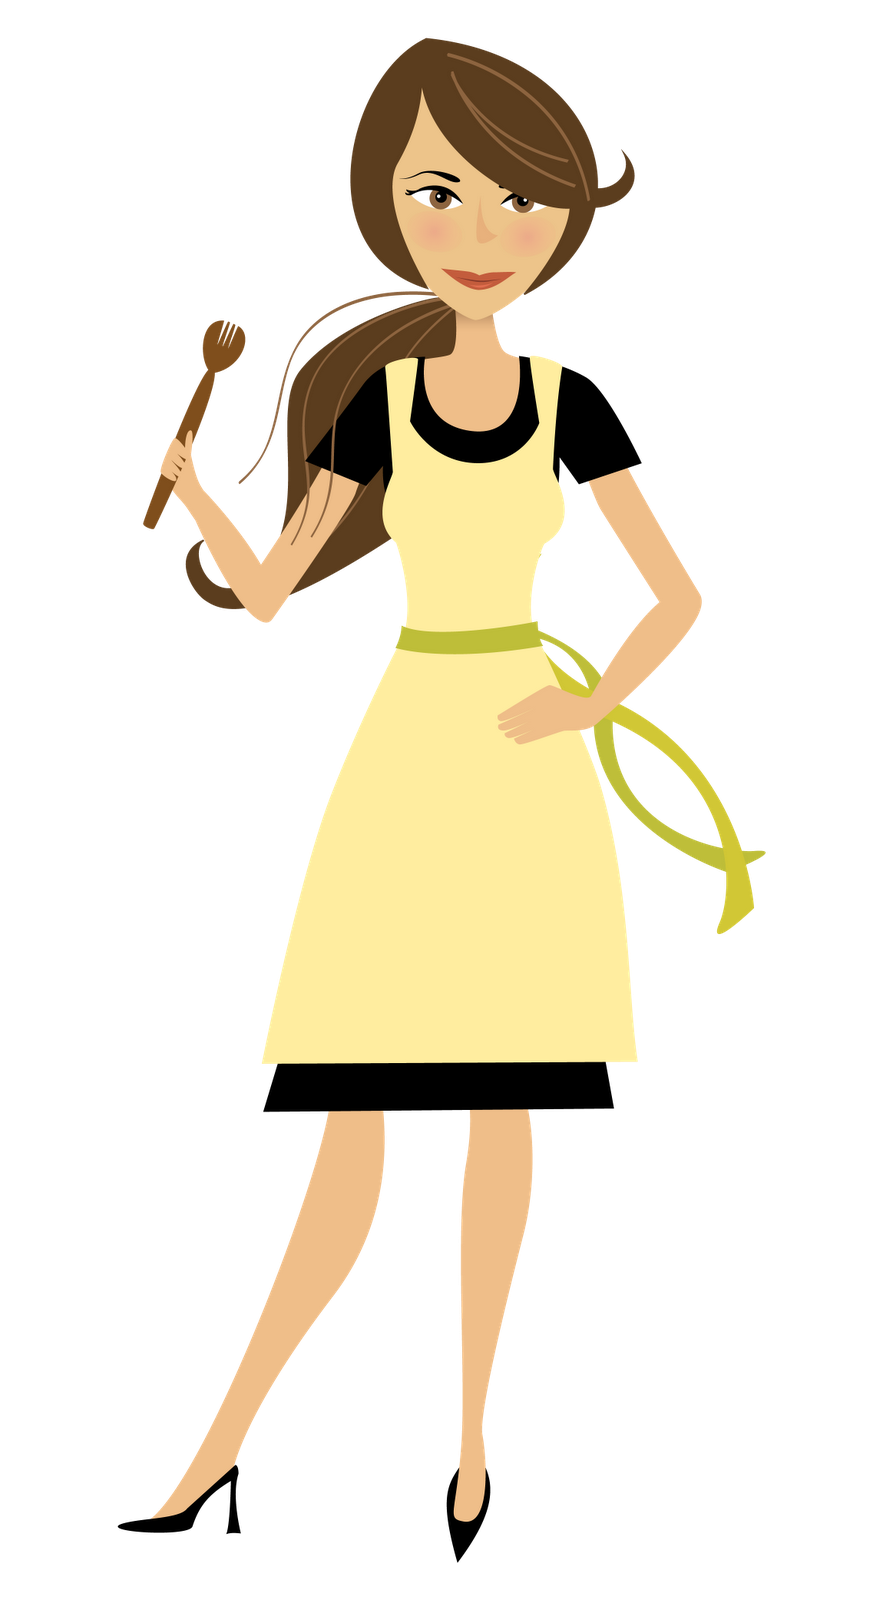 Mom cooking png. Mother transparent pictures free